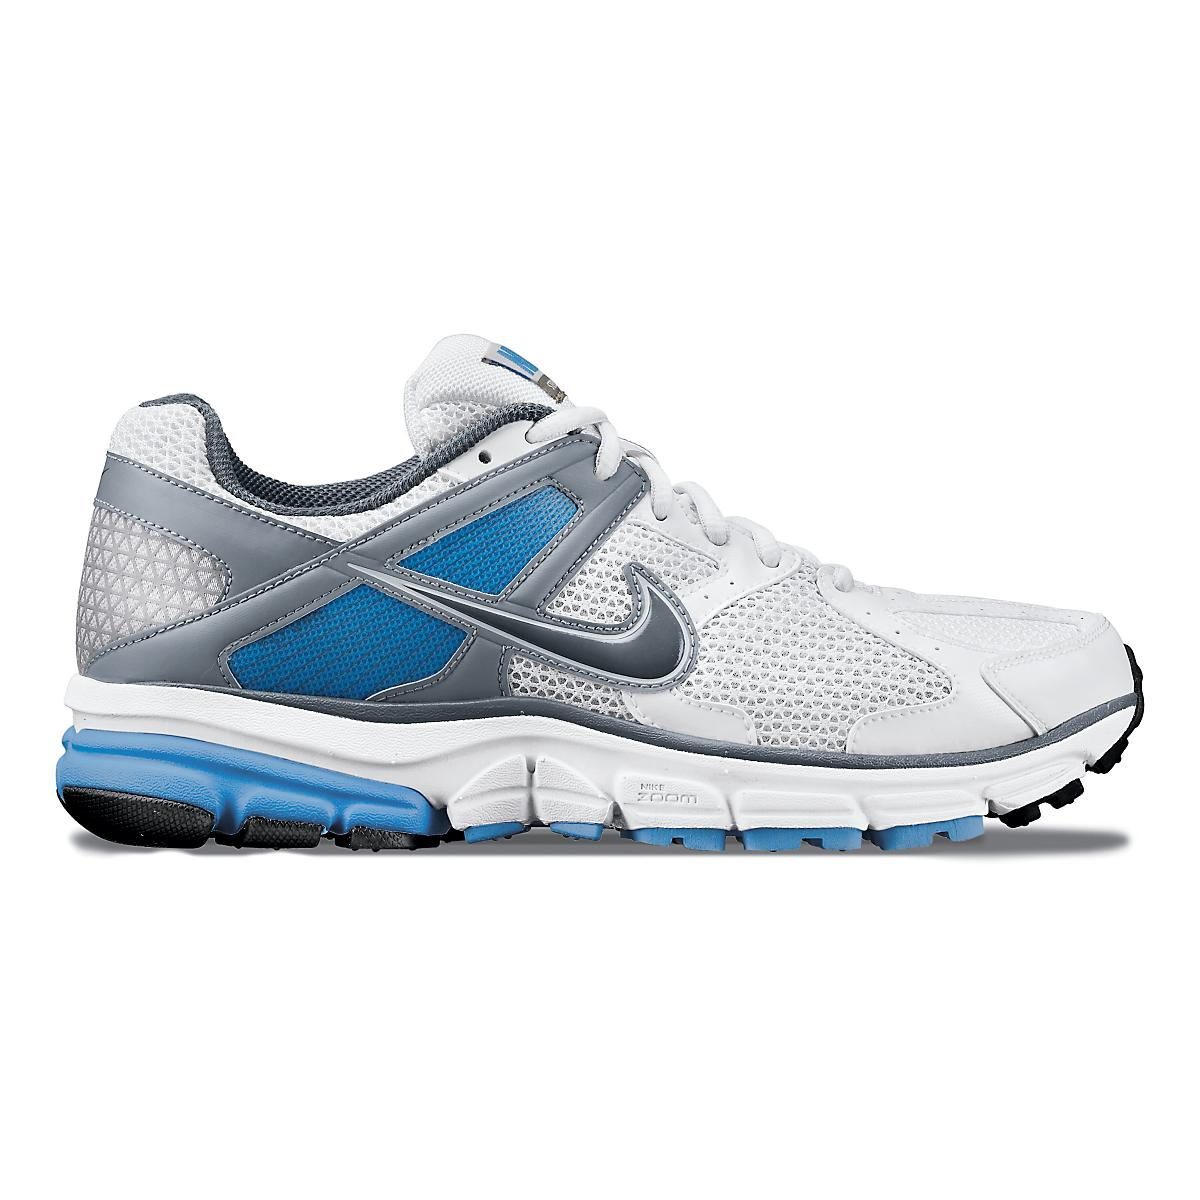 6d165eb514d Womens Nike Zoom Structure Triax+ 14 Running Shoe at Road Runner Sports